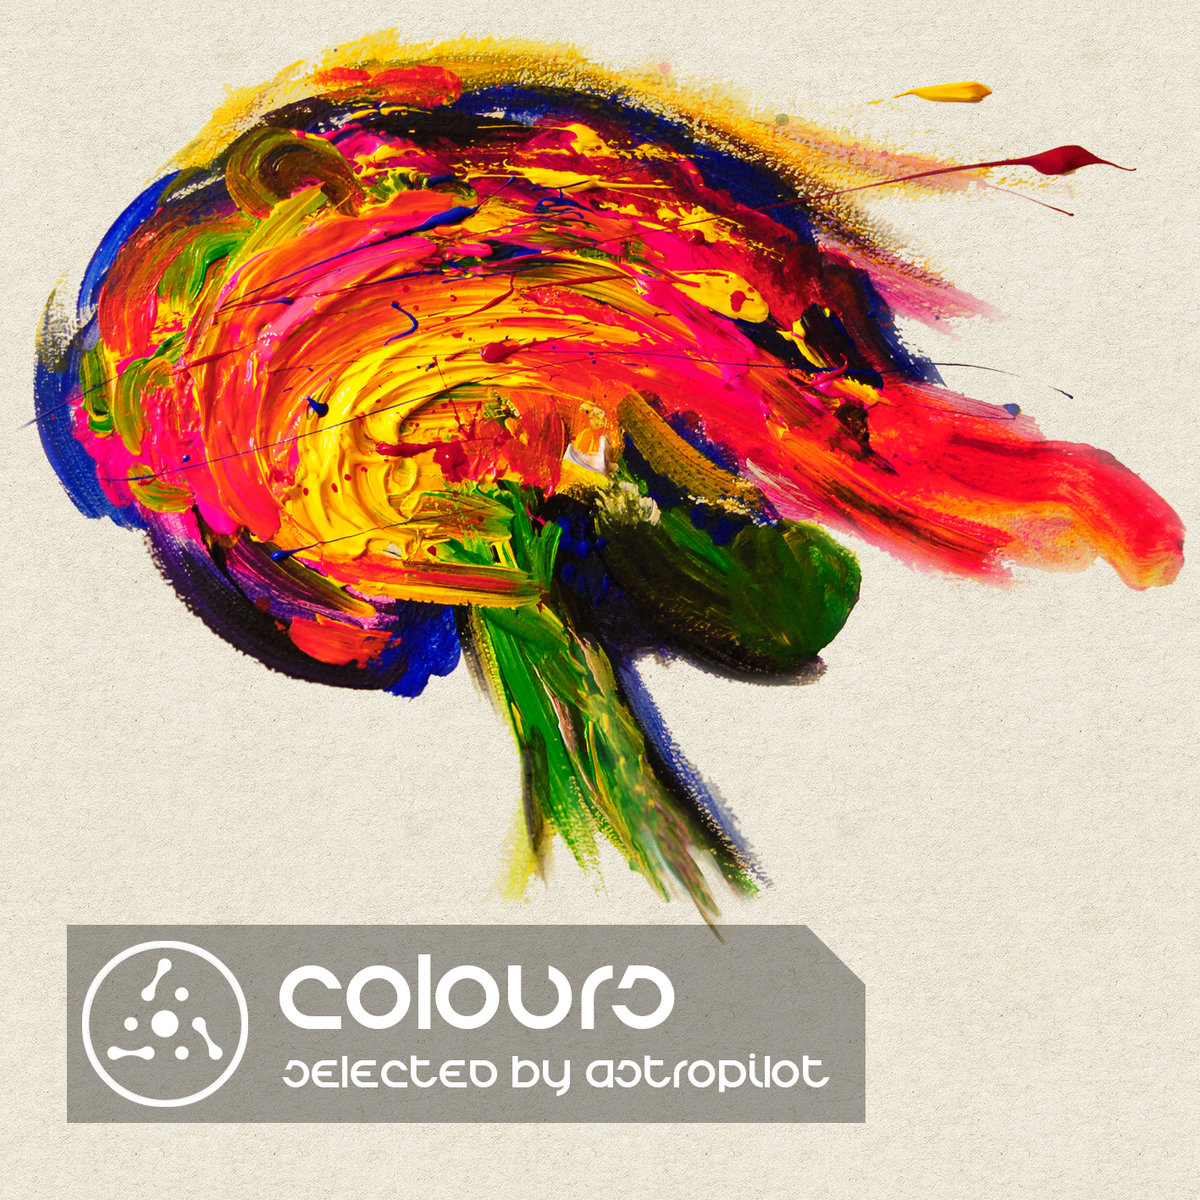 Cloower Wooma - Solaris 2.0 @ 'Various Artists - Colours' album (electronic, ambient)